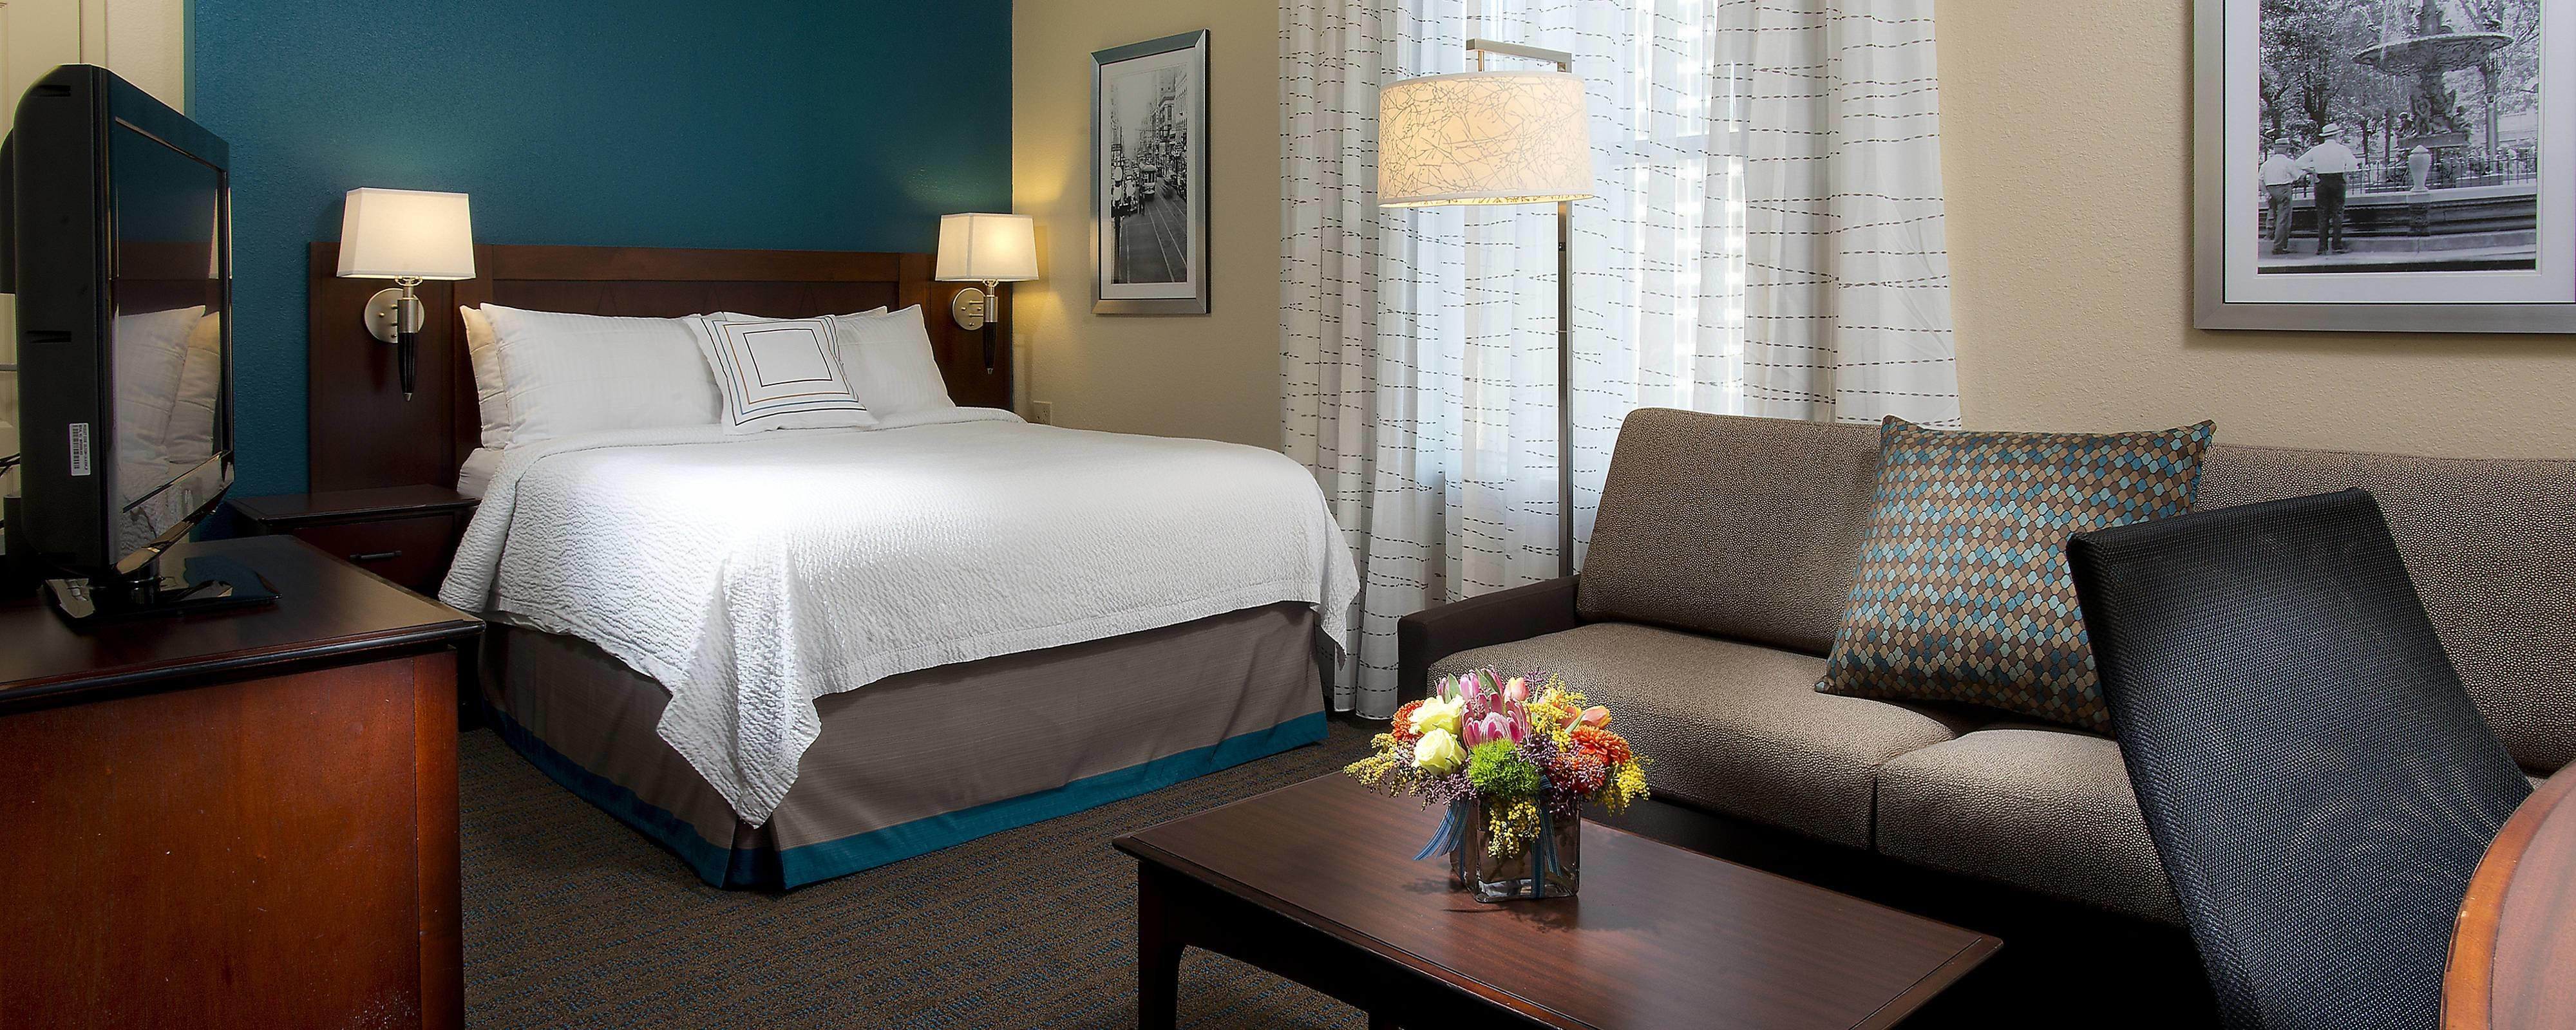 Best 2 Bedroom Suites Memphis Tn Www Resnooze Com With Pictures